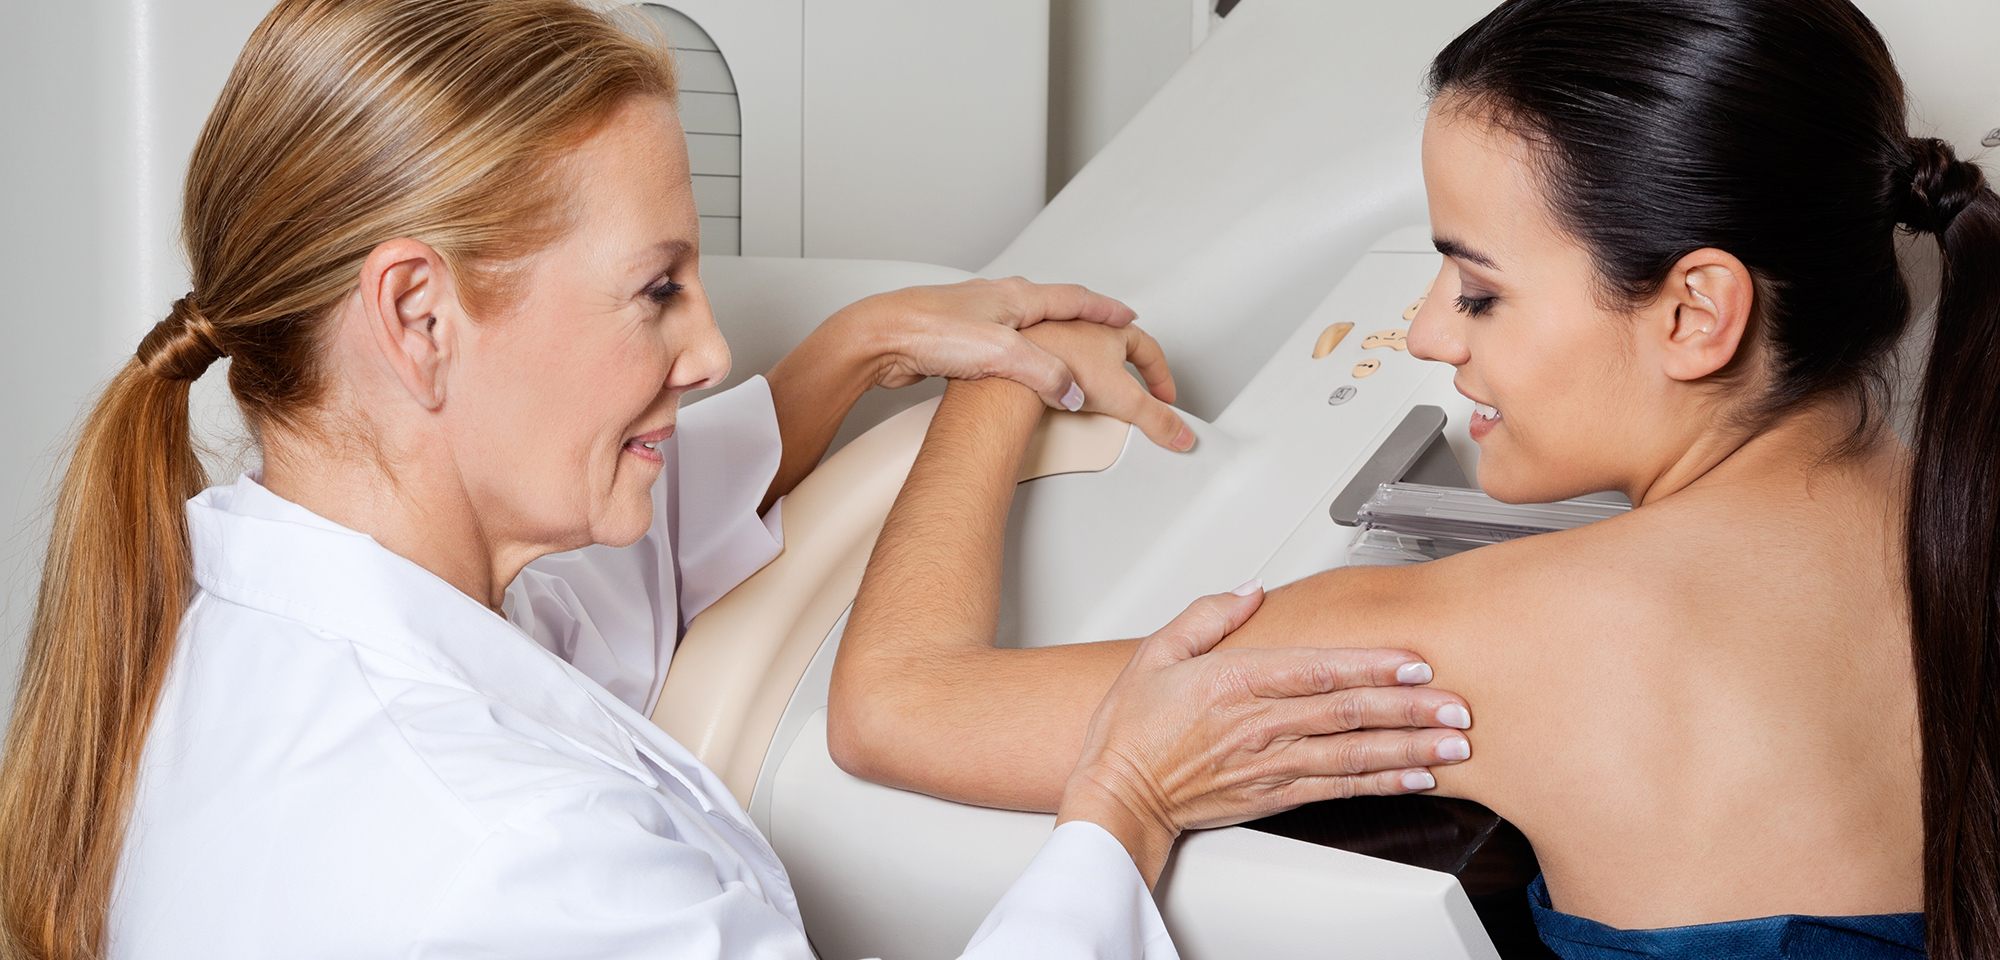 MAKING QUALITY-BASED DECISIONS: IS 3D MAMMOGRAM BETTER THAN 2D?